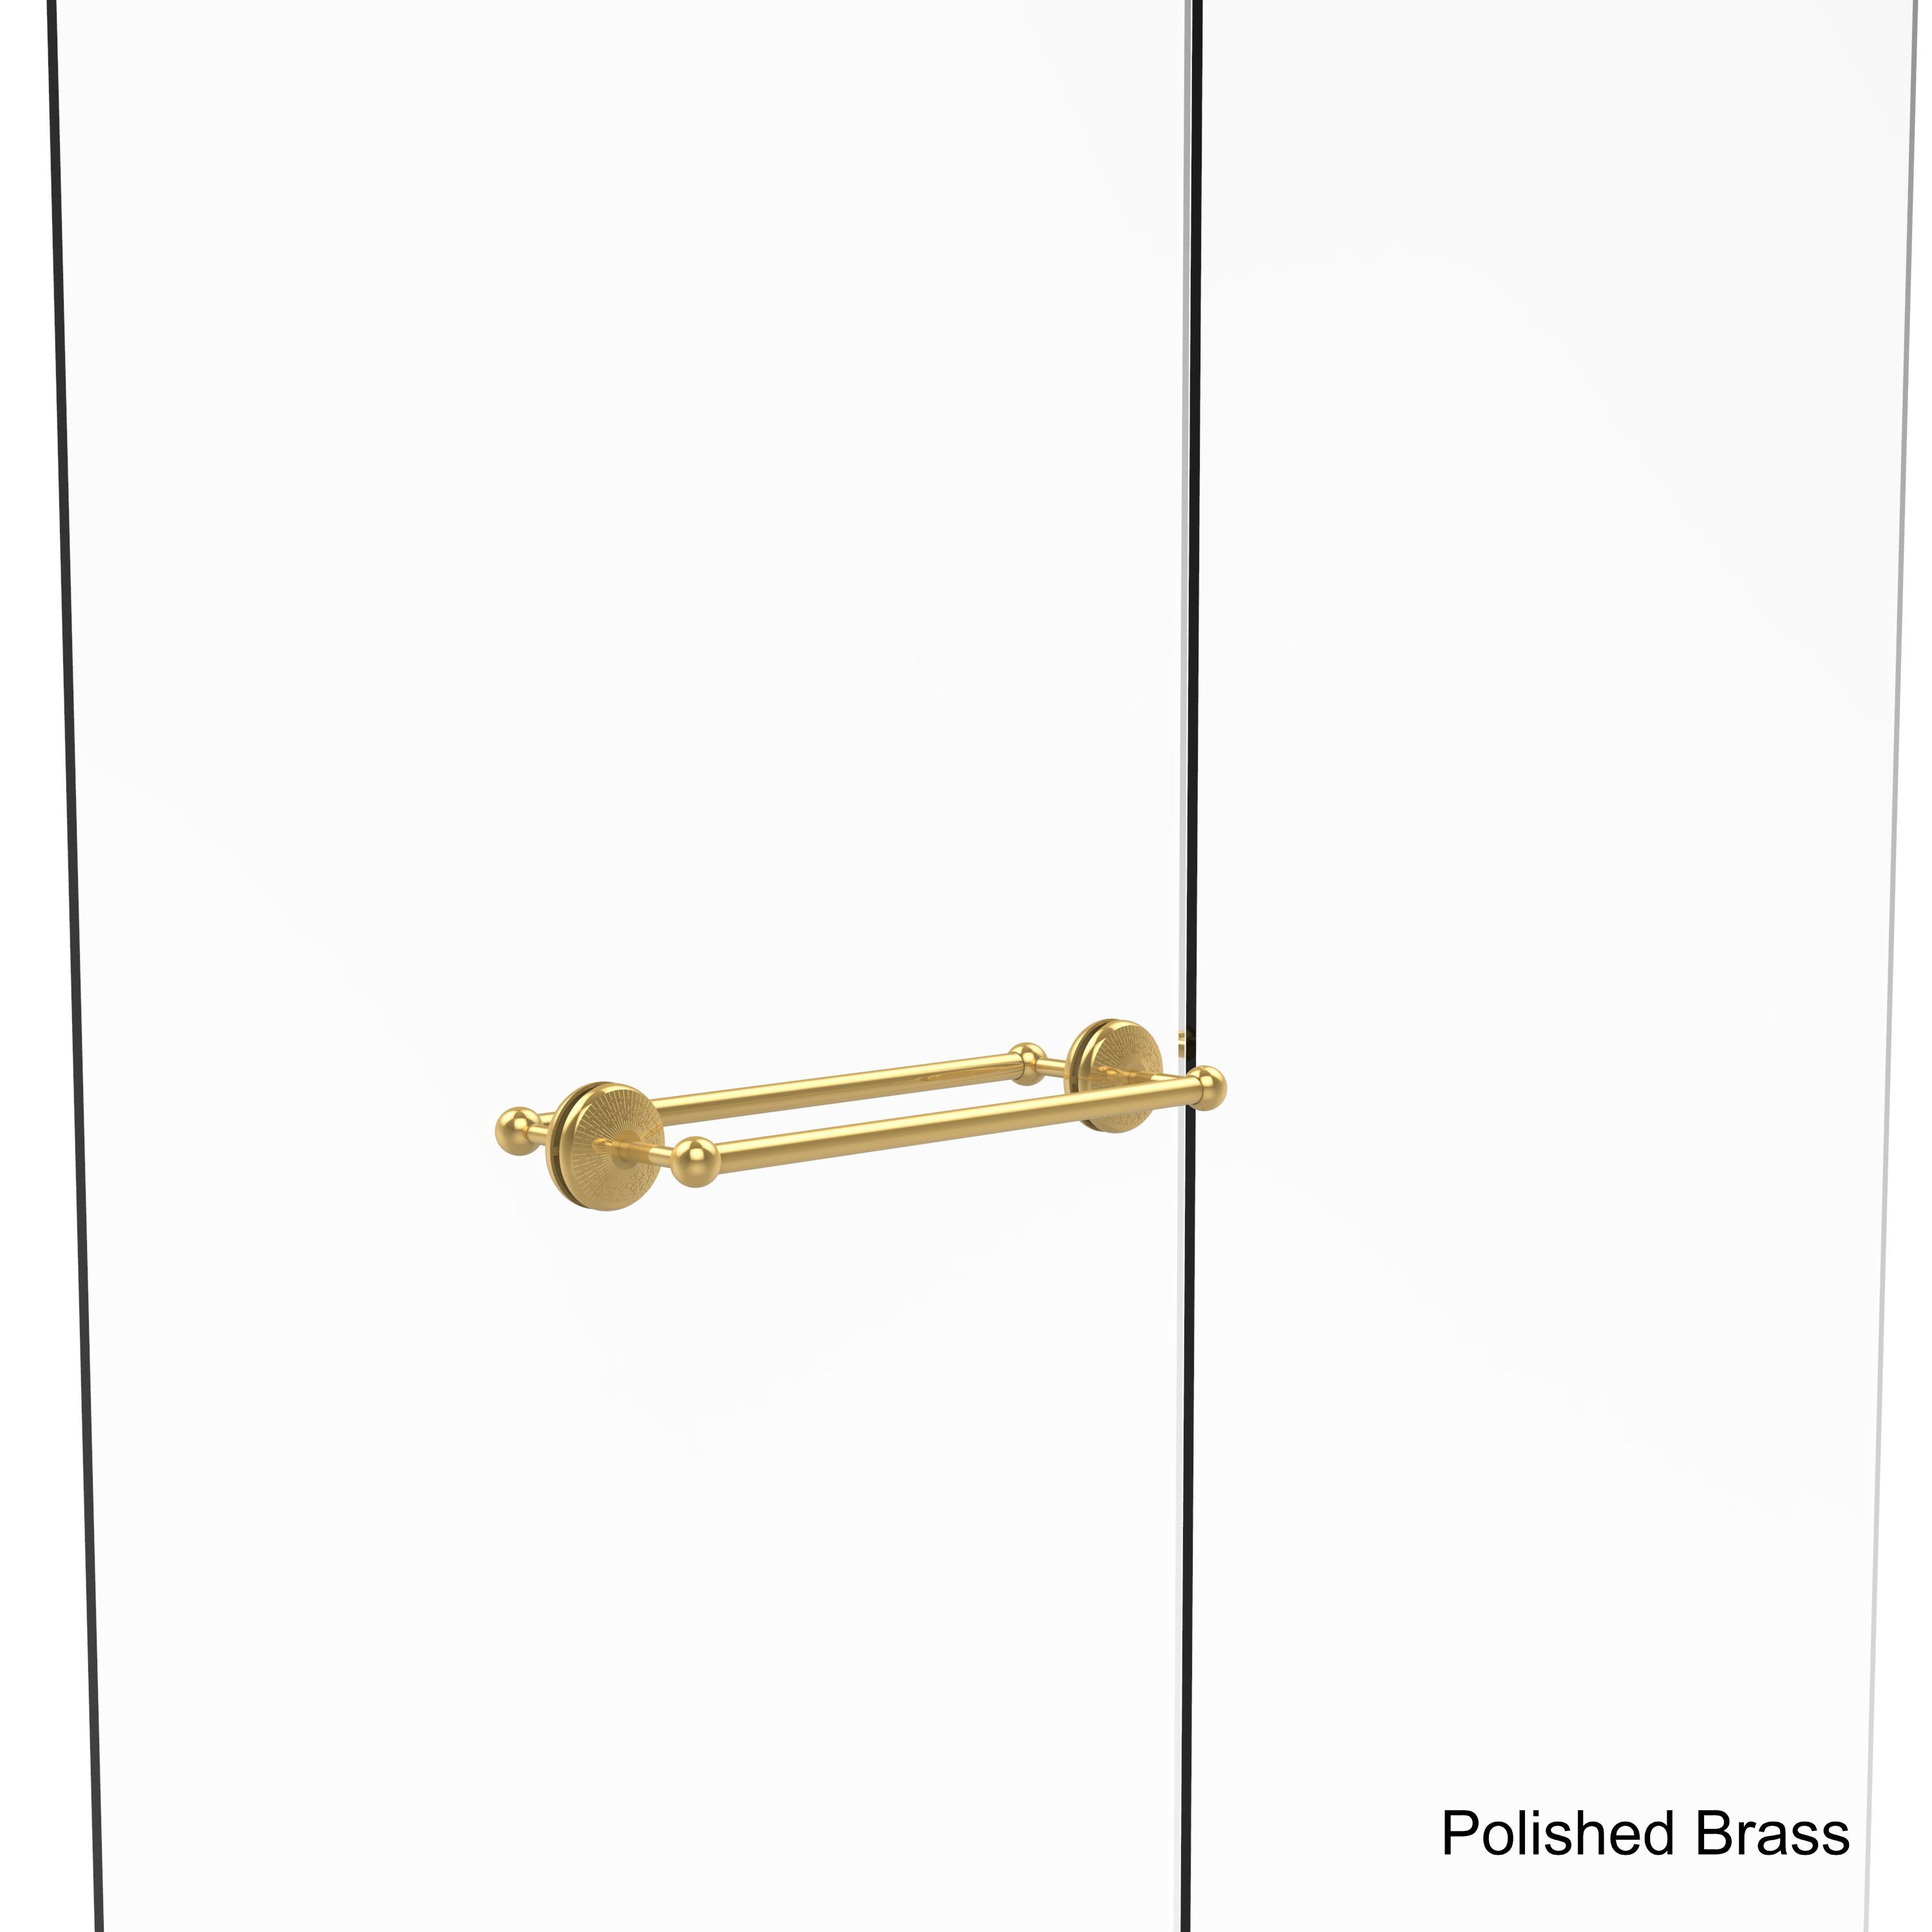 Allied Brass Monte Carlo Collection Brass 18-inch Back-to-back Shower Door Towel Bar (